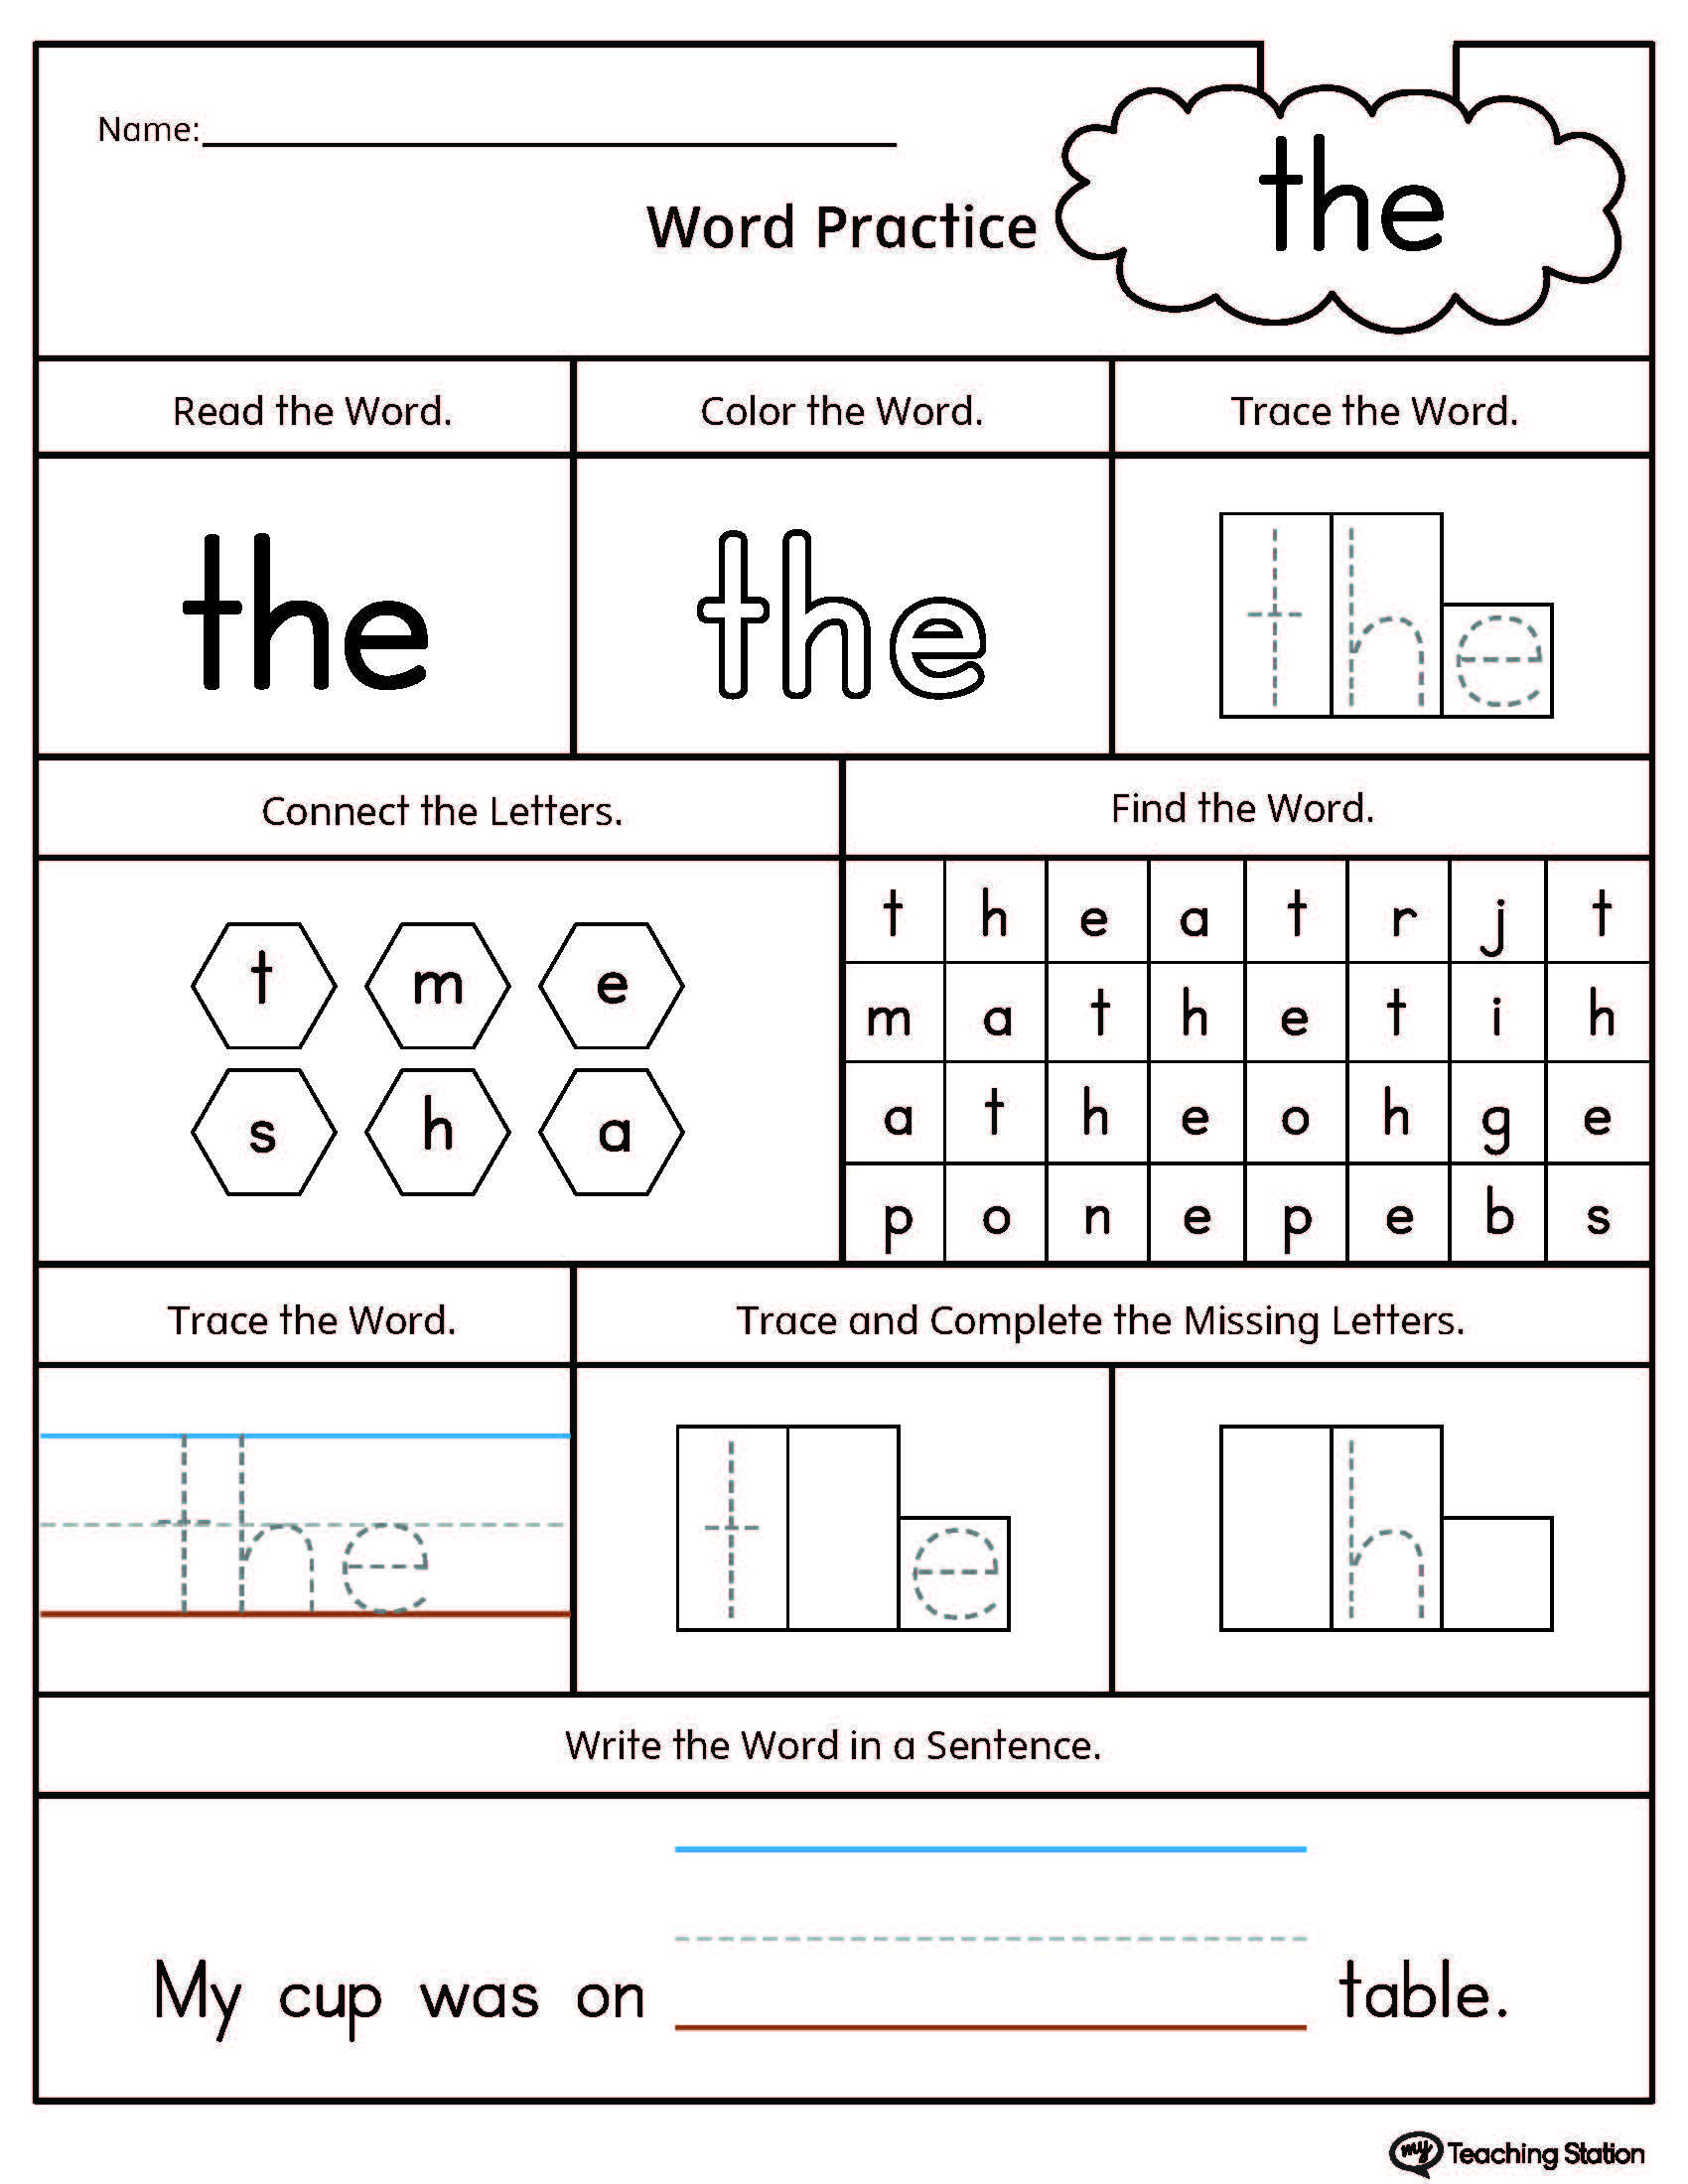 Worksheets Free Printable Sight Word Worksheets sight word the printable worksheet worksheets freesight practice with